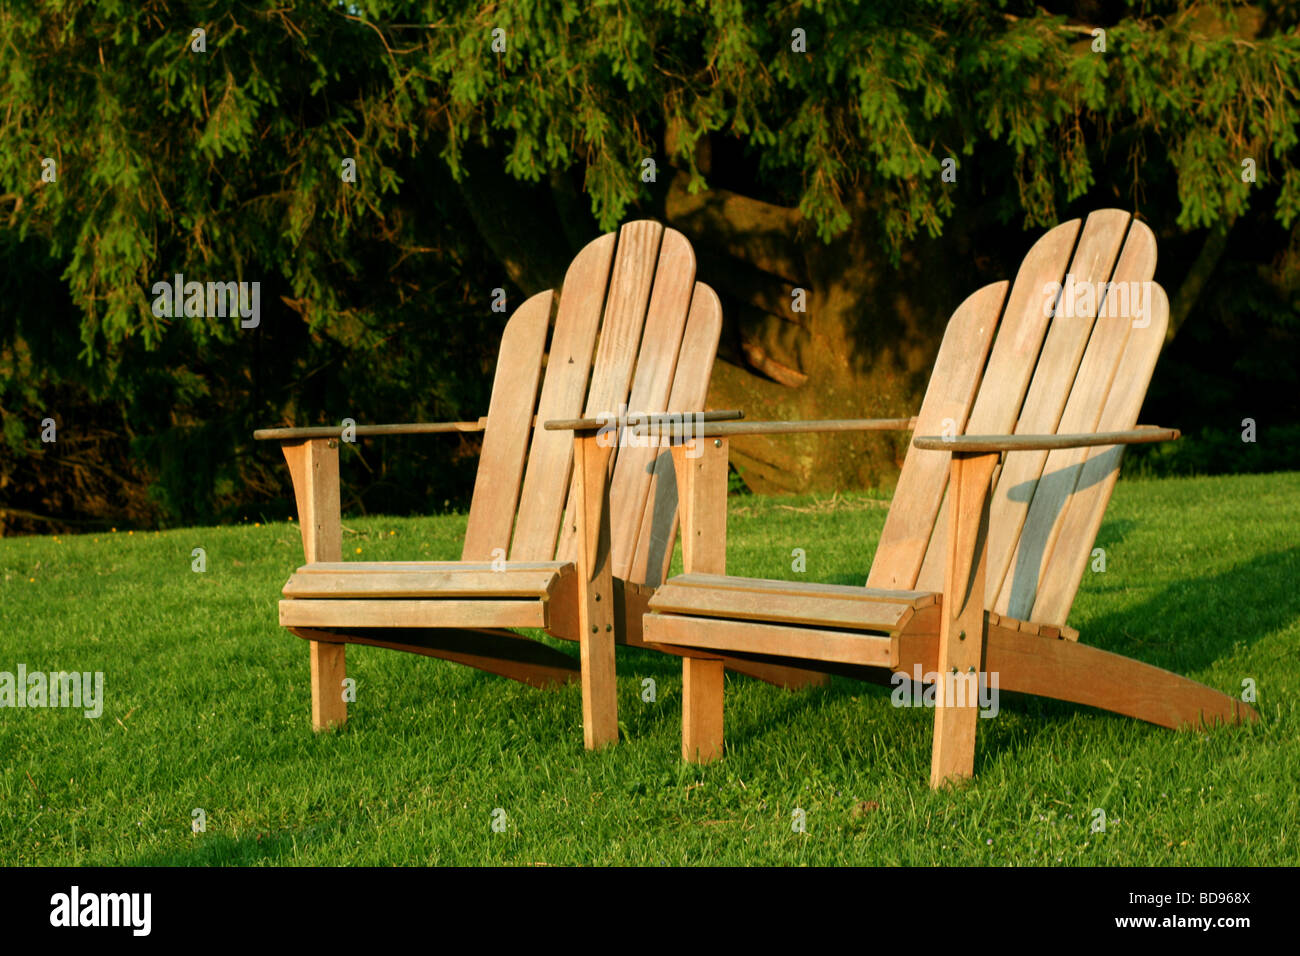 Pleasant Adirondack Chair Stock Photos Adirondack Chair Stock Beatyapartments Chair Design Images Beatyapartmentscom